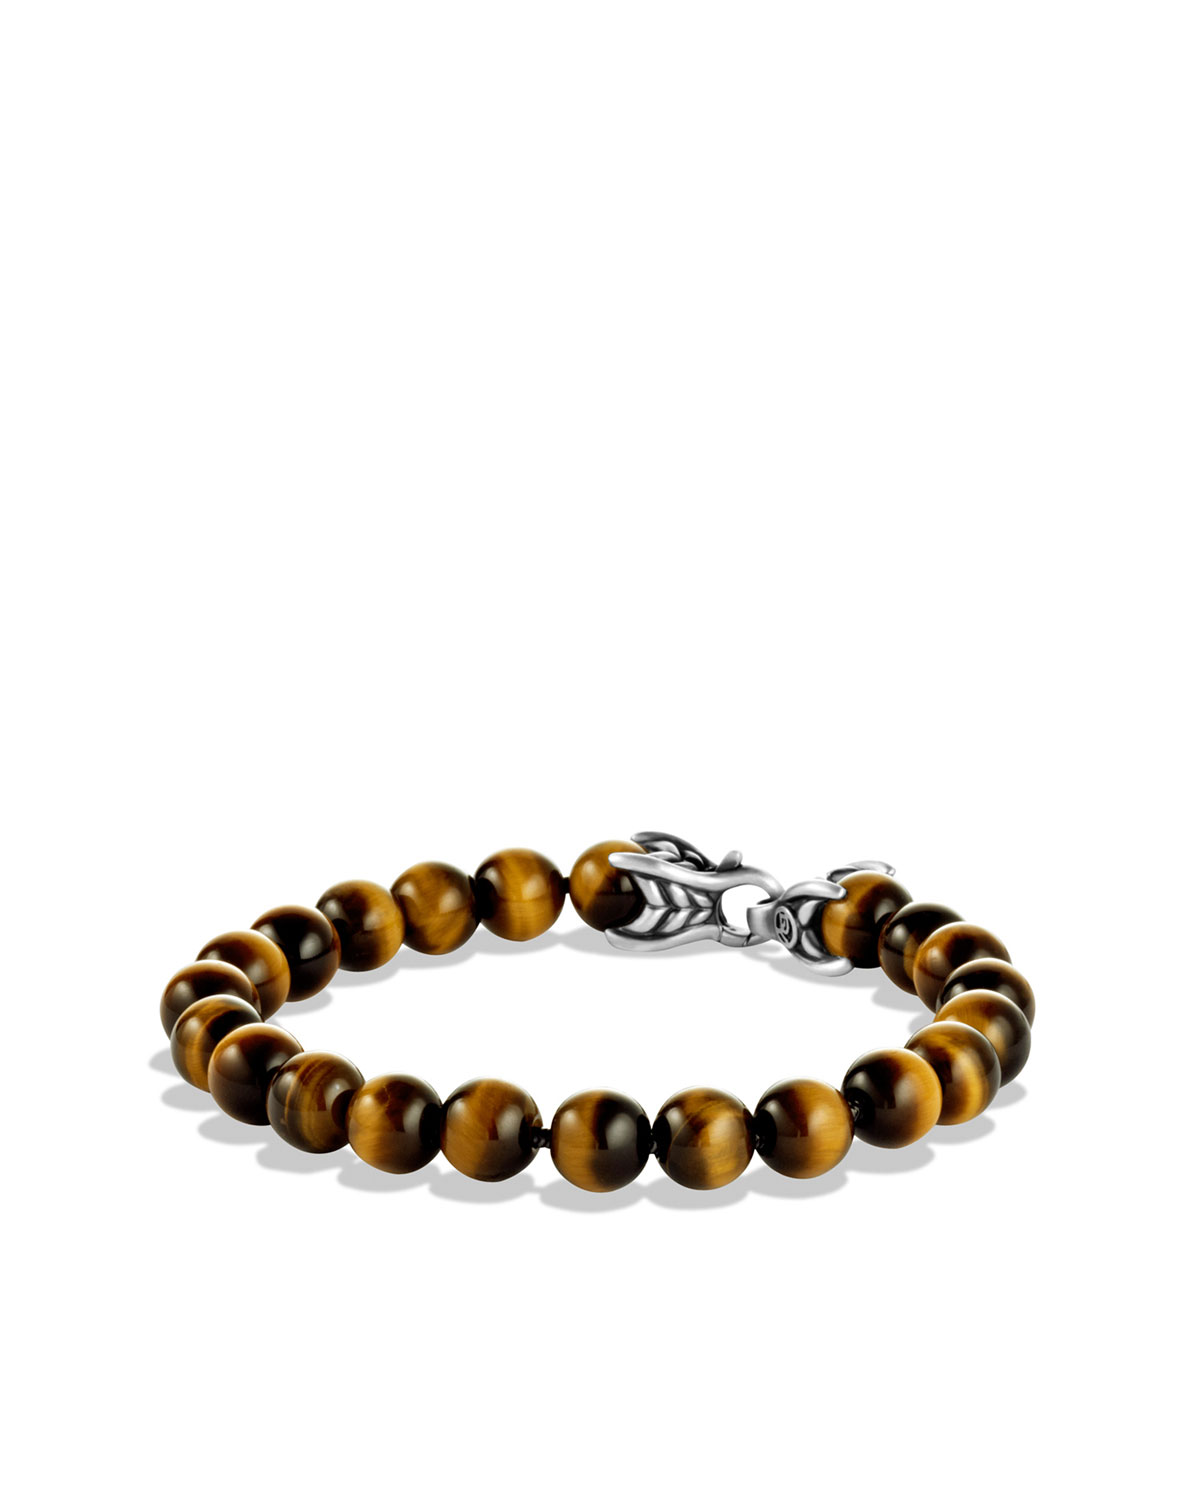 David Yurman Spiritual Beads Bracelet with Tiger\'s Eye | Neiman Marcus